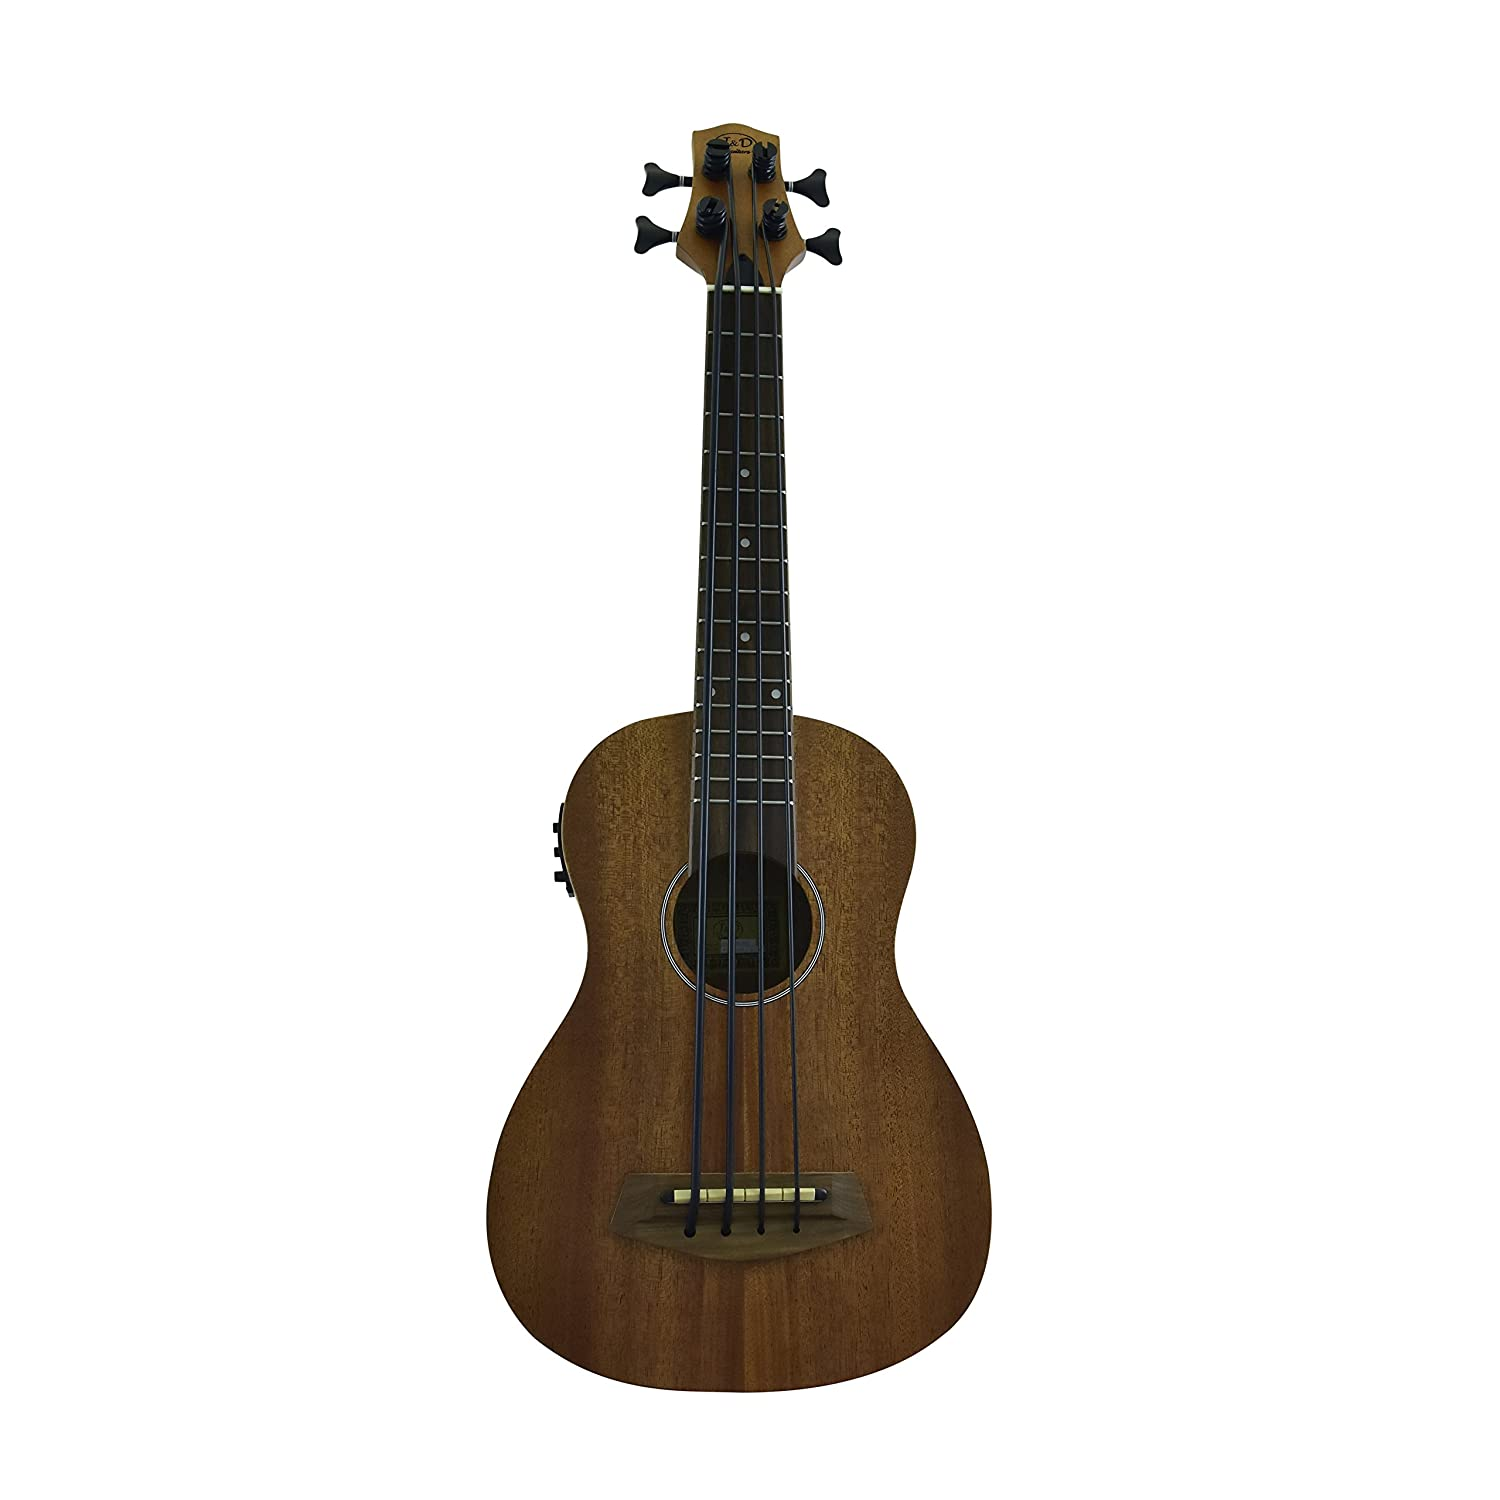 J&D Guitars Acoustic Electric Bass Ukulele with Tuner & EQ, Mahogany Body from CNZ Audio